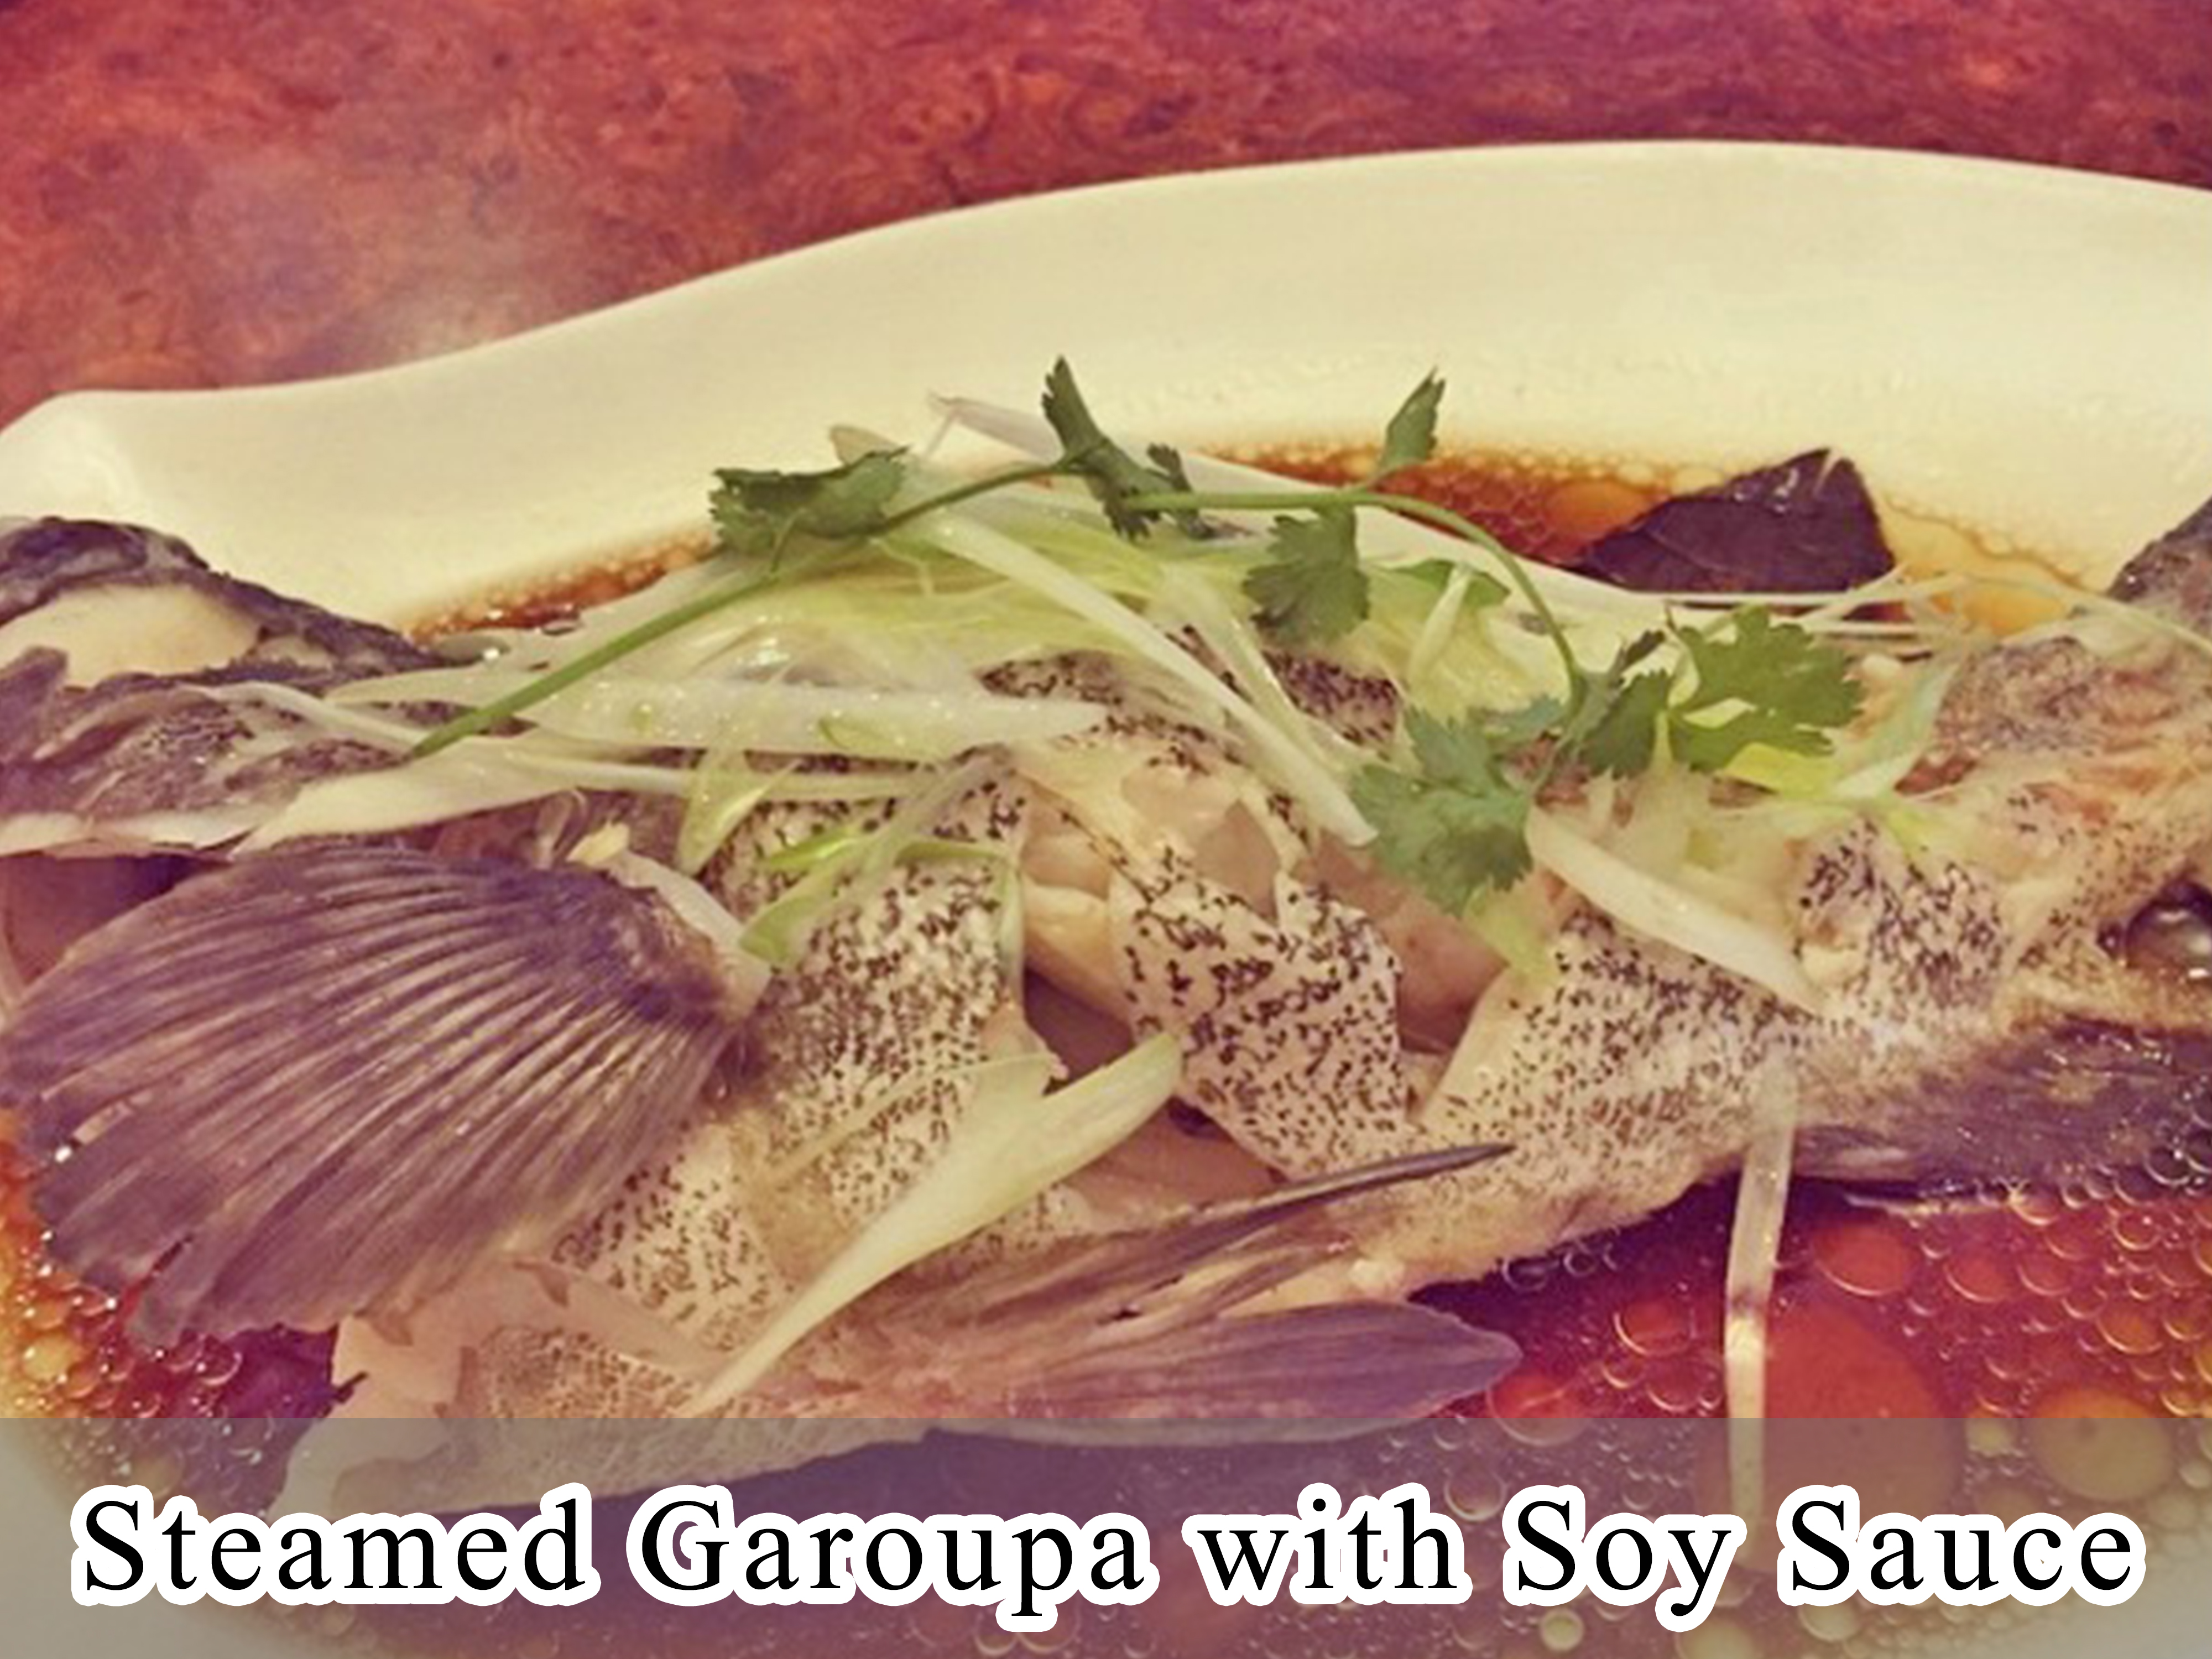 Steamed Garoupa with Soy Sauce